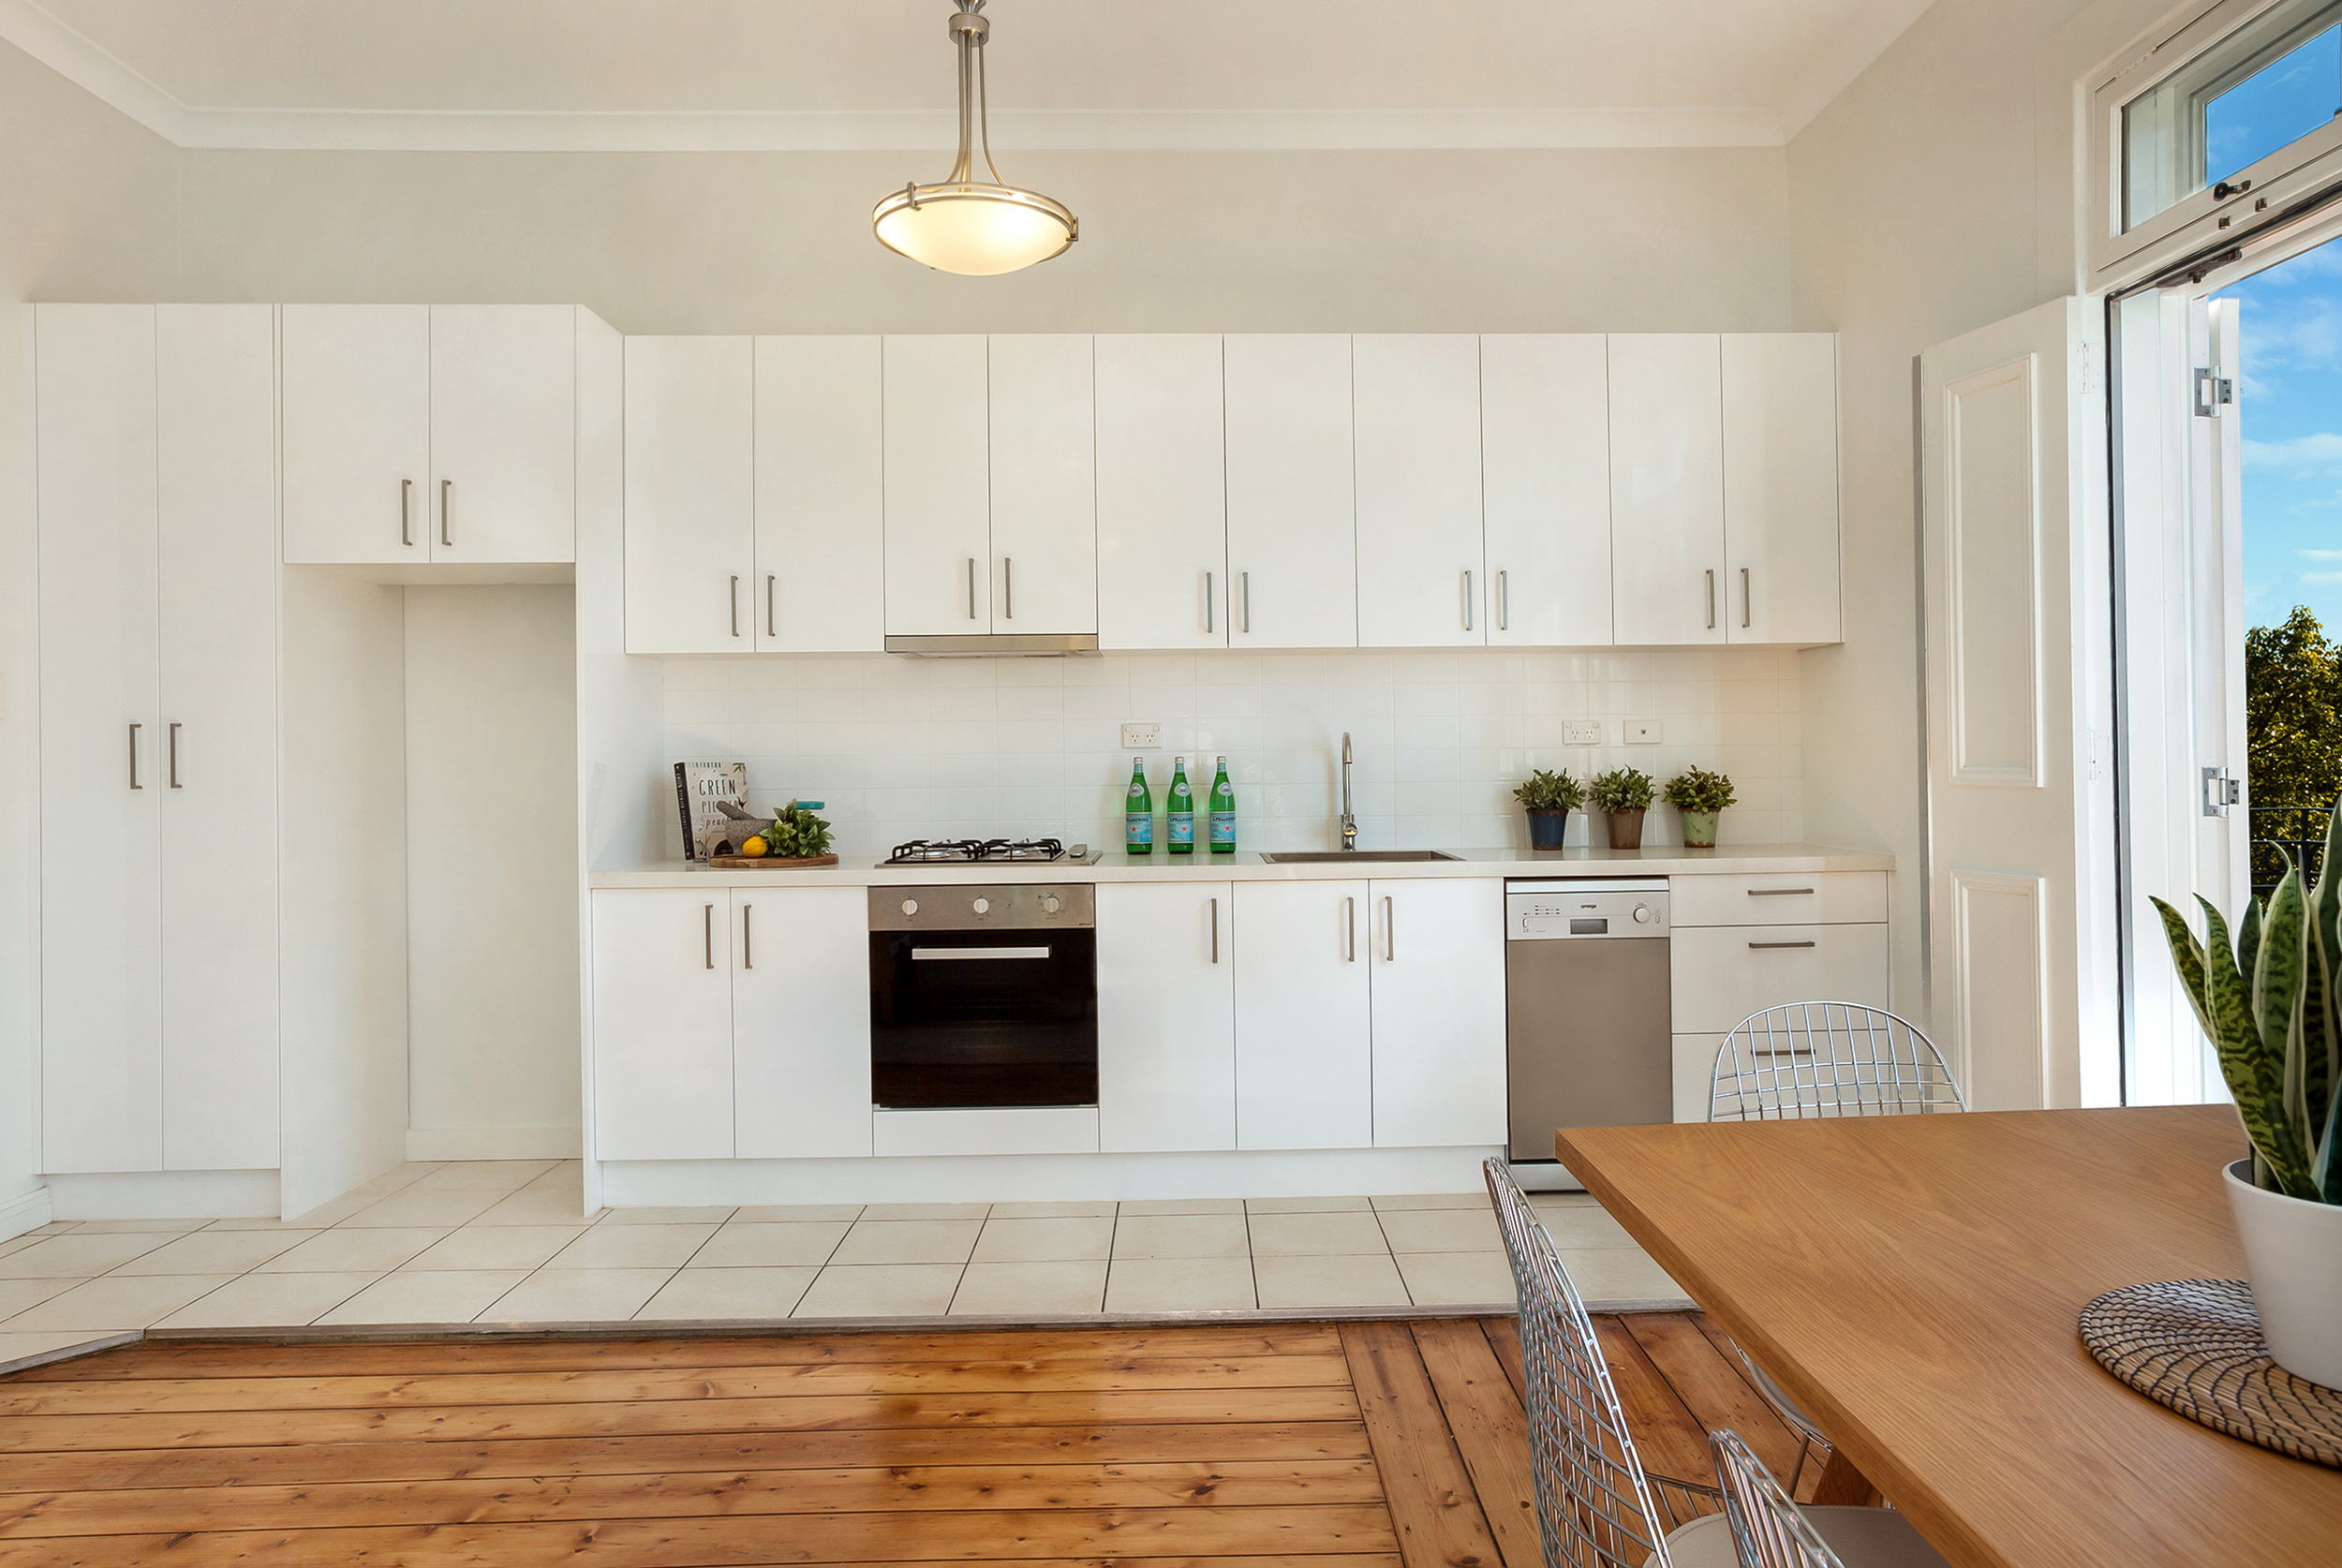 Middleton-St-2-24-Petersham-Kitchen.jpg